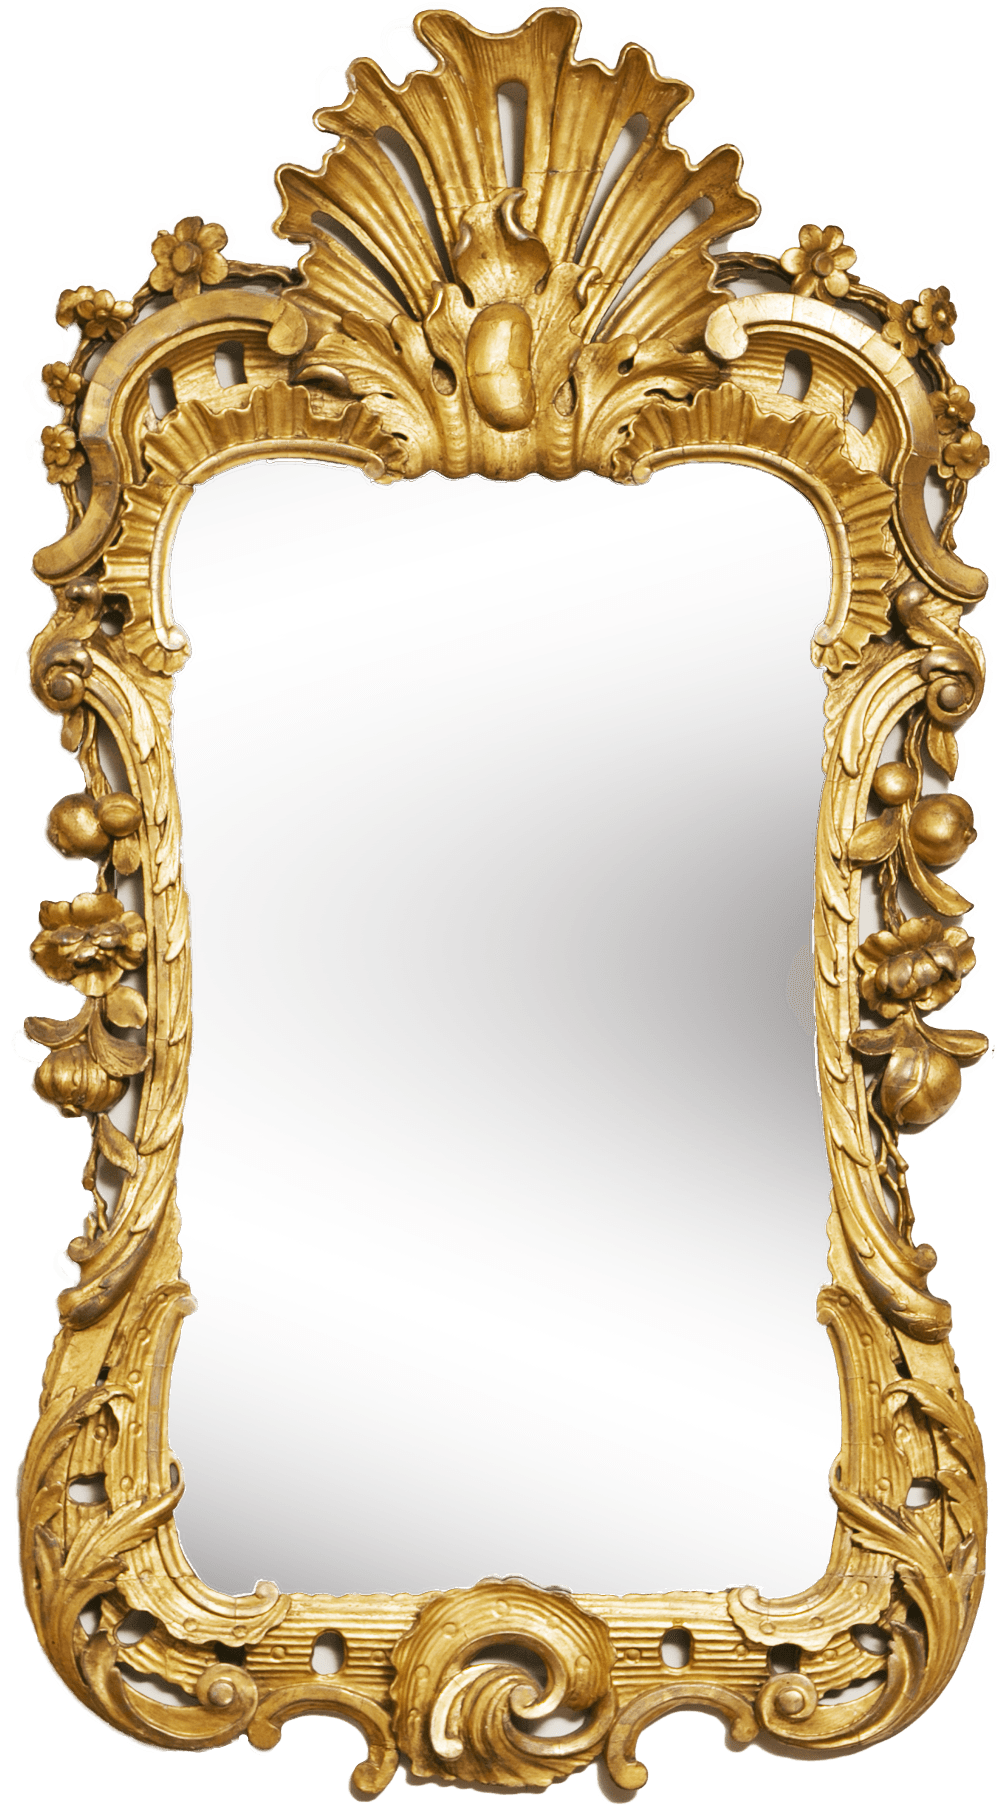 Gold frame transparent png. Square clipart square mirror